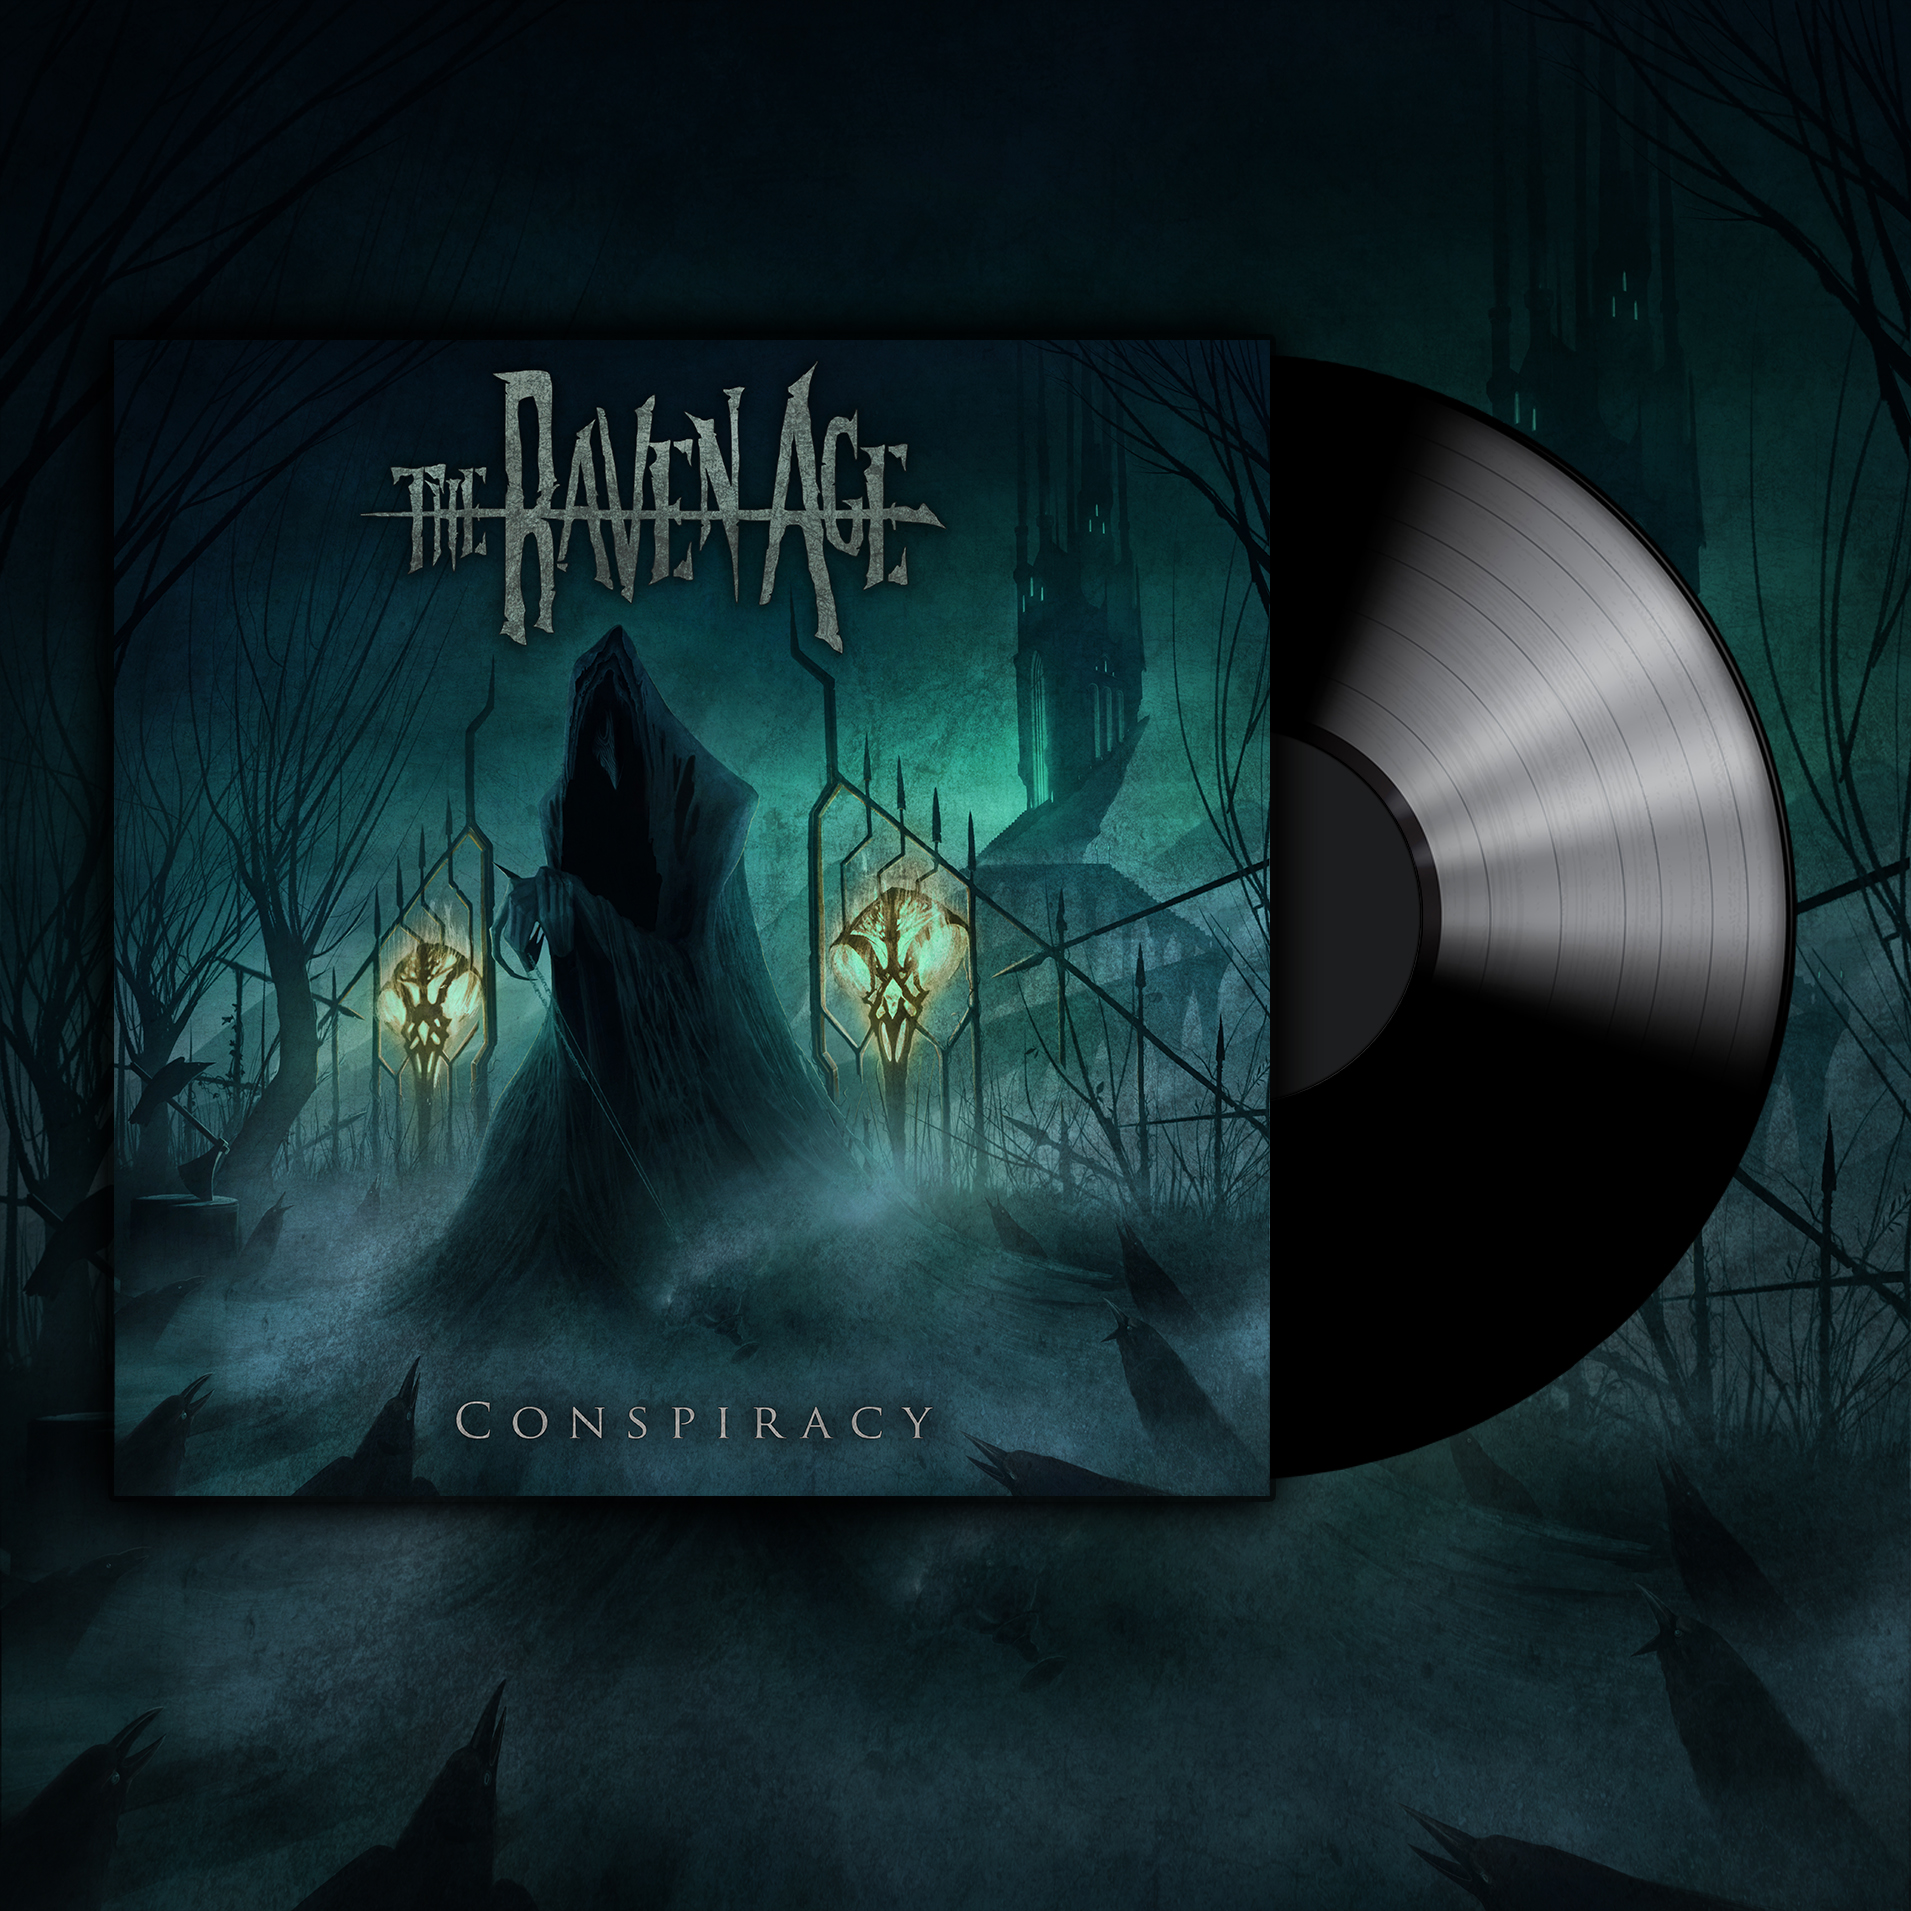 Conspiracy - Vinyl Bundle - The Raven Age